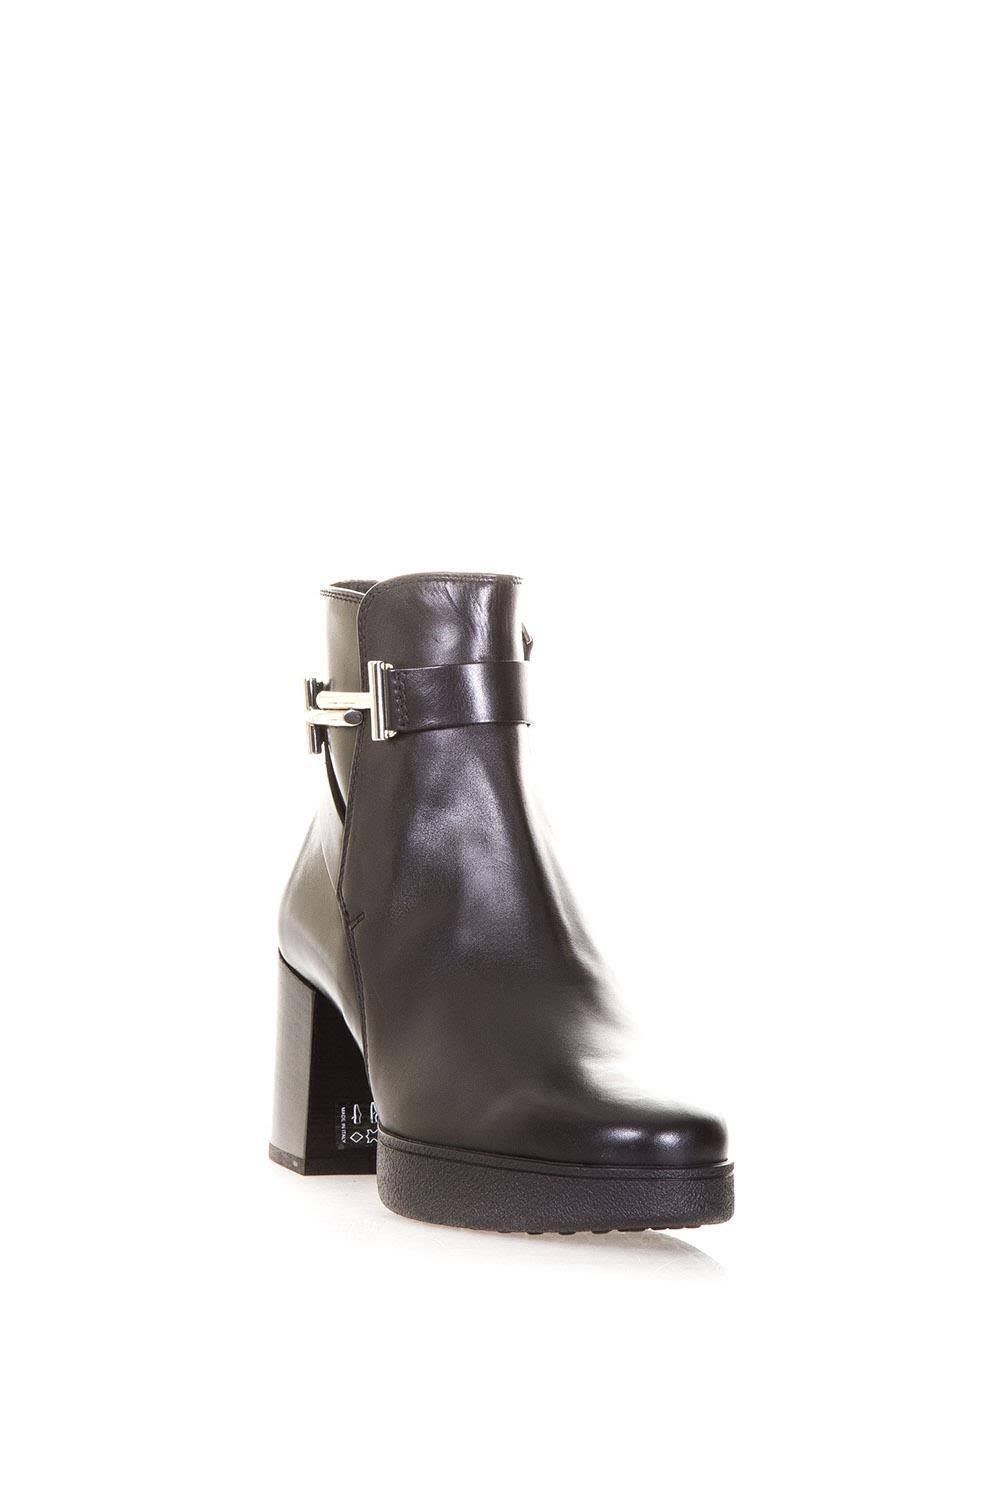 Tods Leather Ankle Boots With Tods Double T